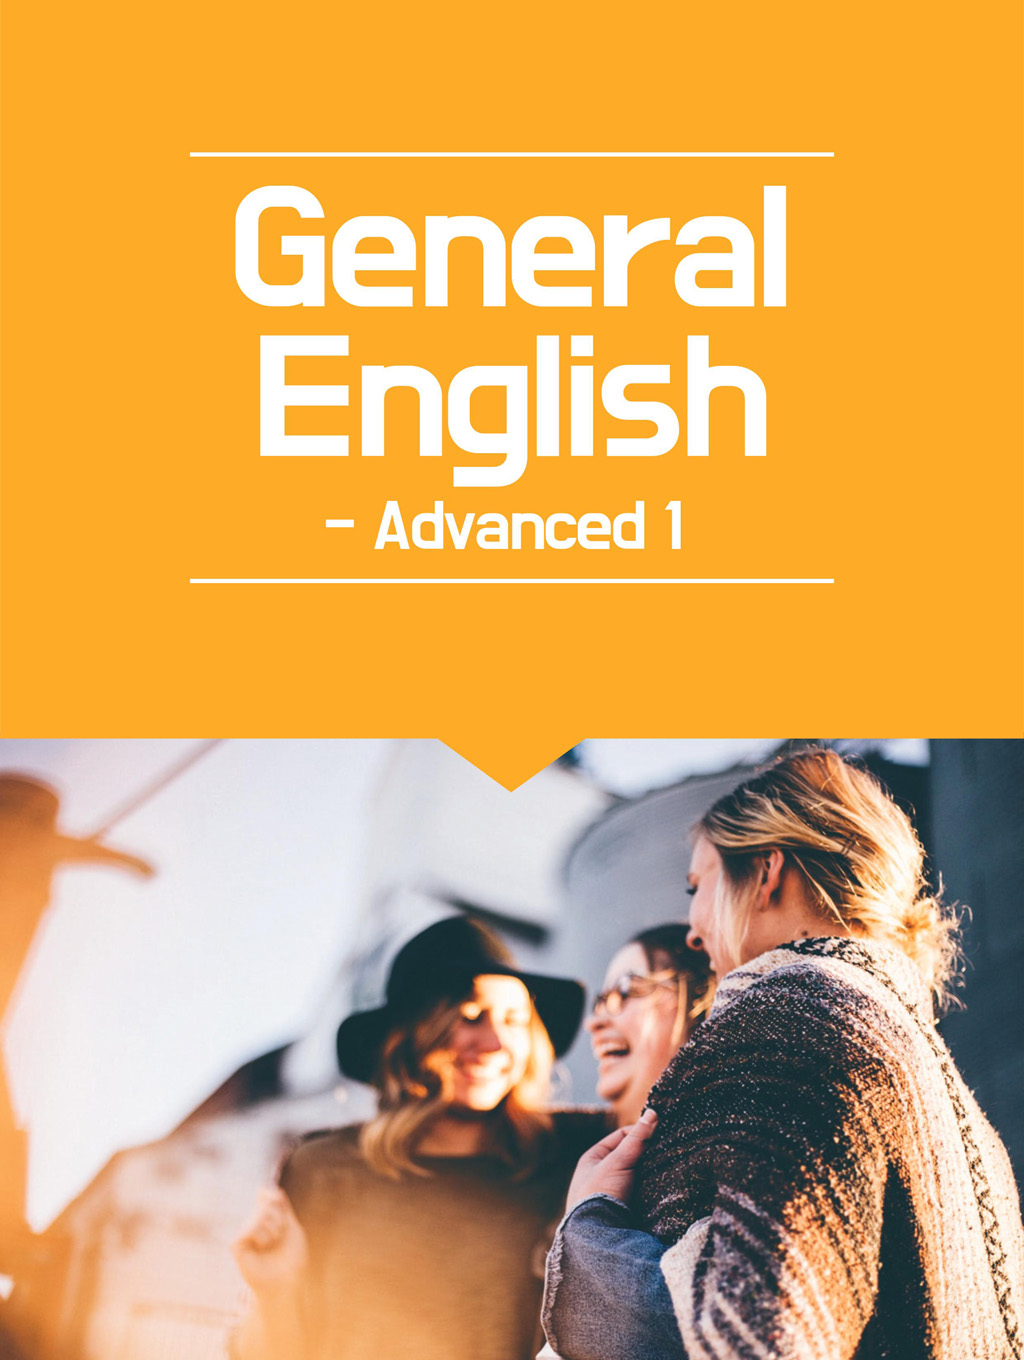 General English - Advanced 1